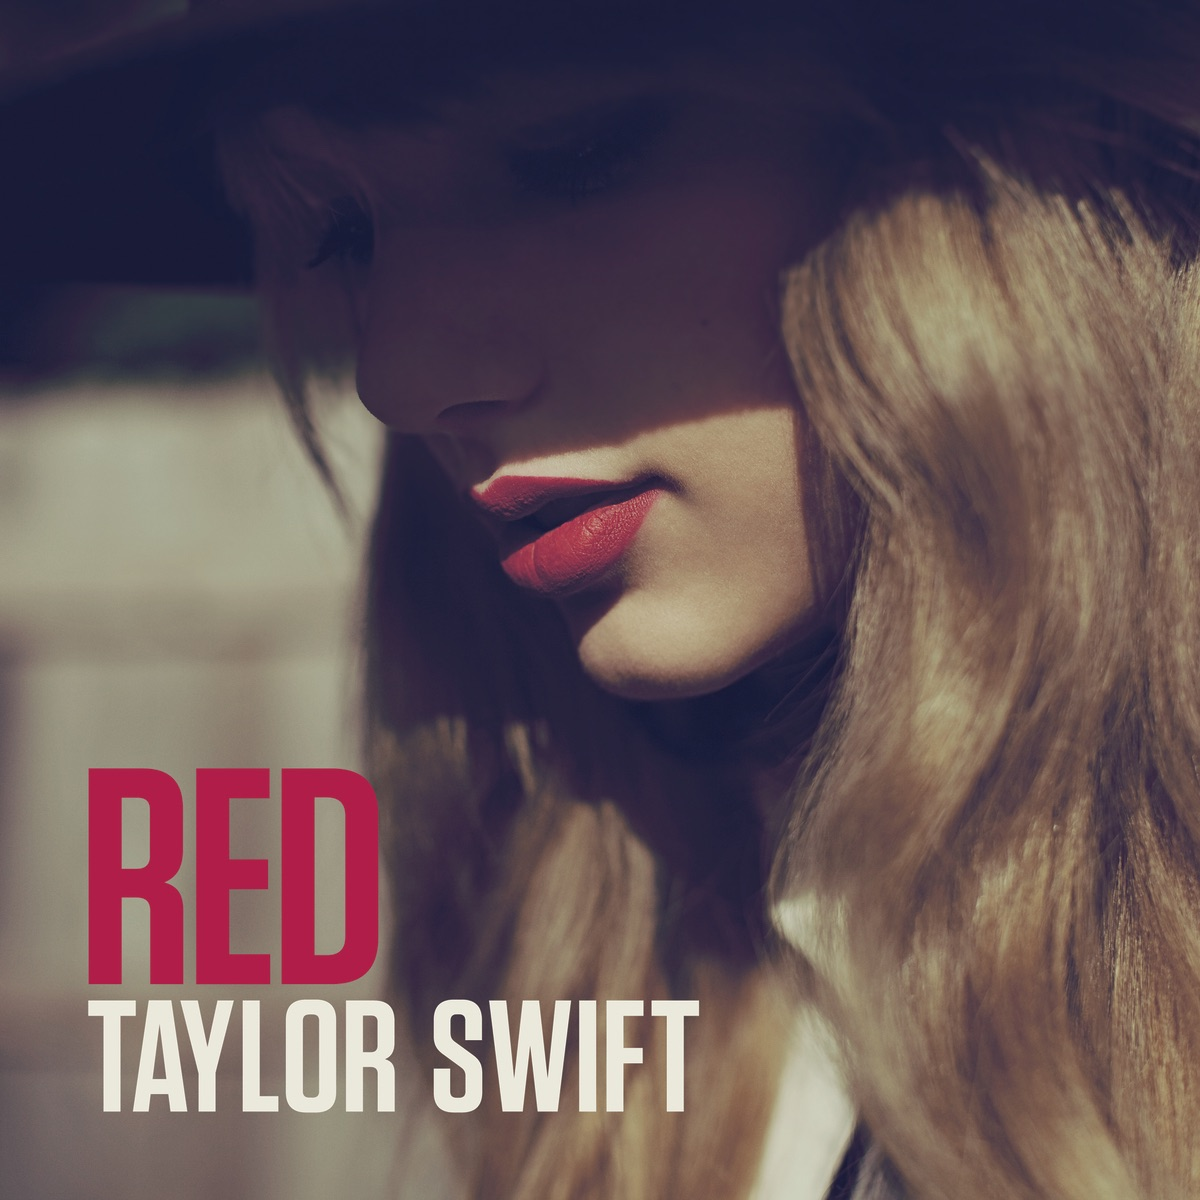 Red Taylor Swift CD cover